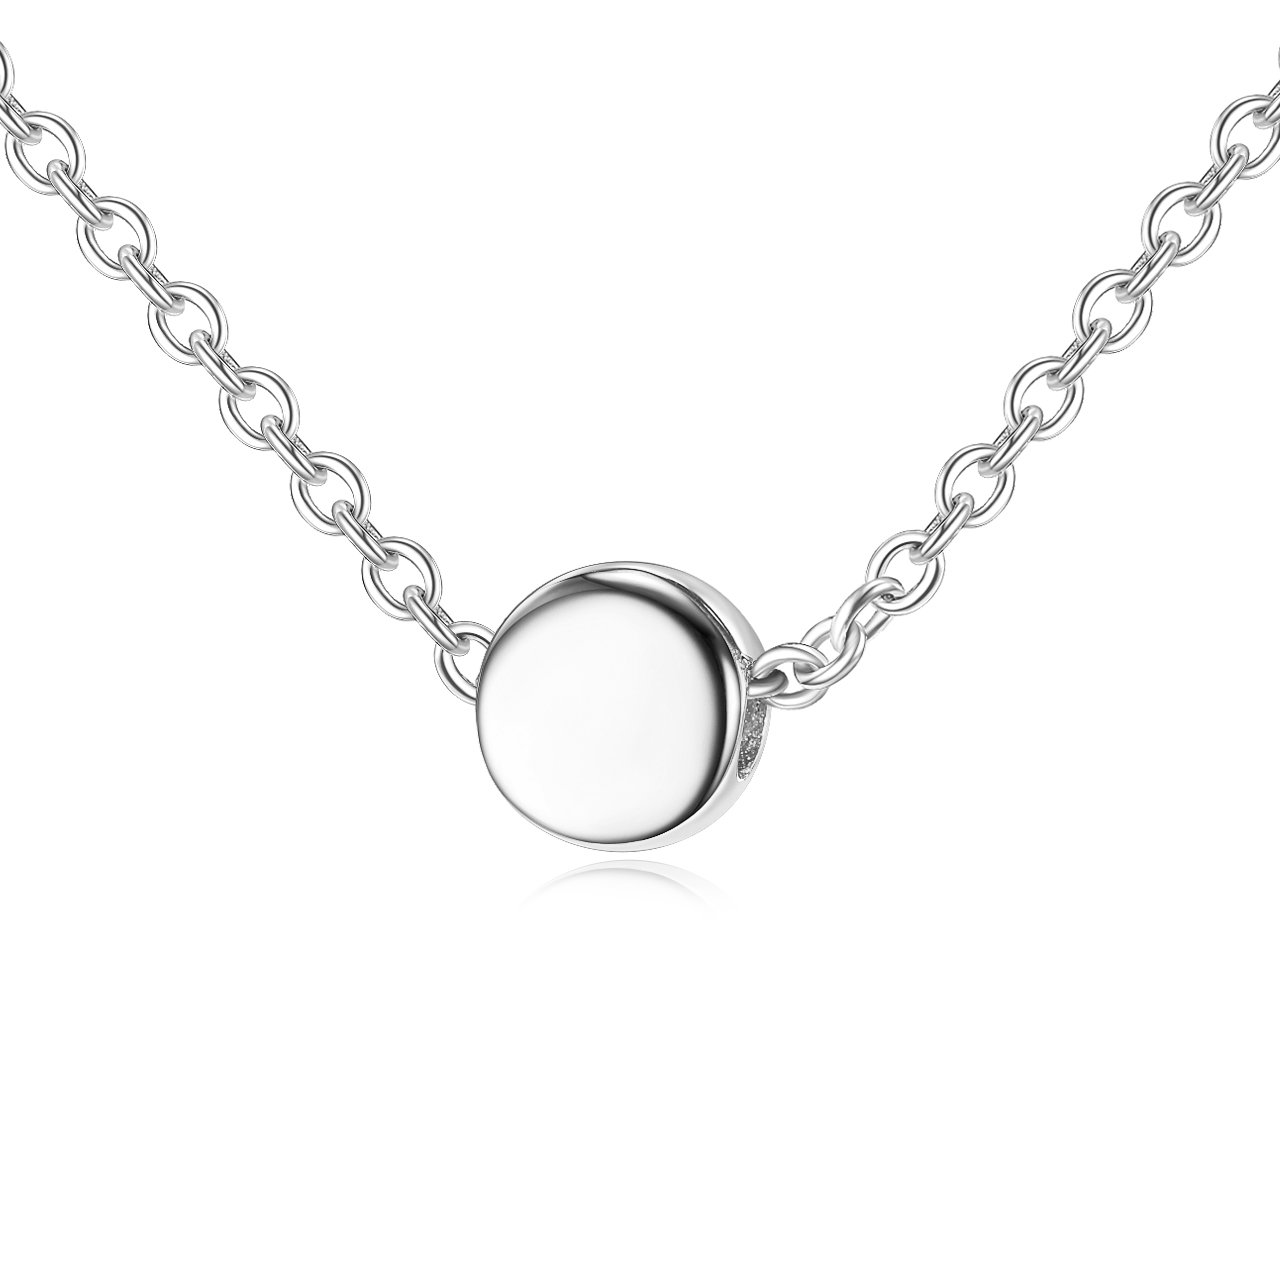 Lemondrop Sterling Silver Tiny Dot Necklace - Round Circle Necklace for Women